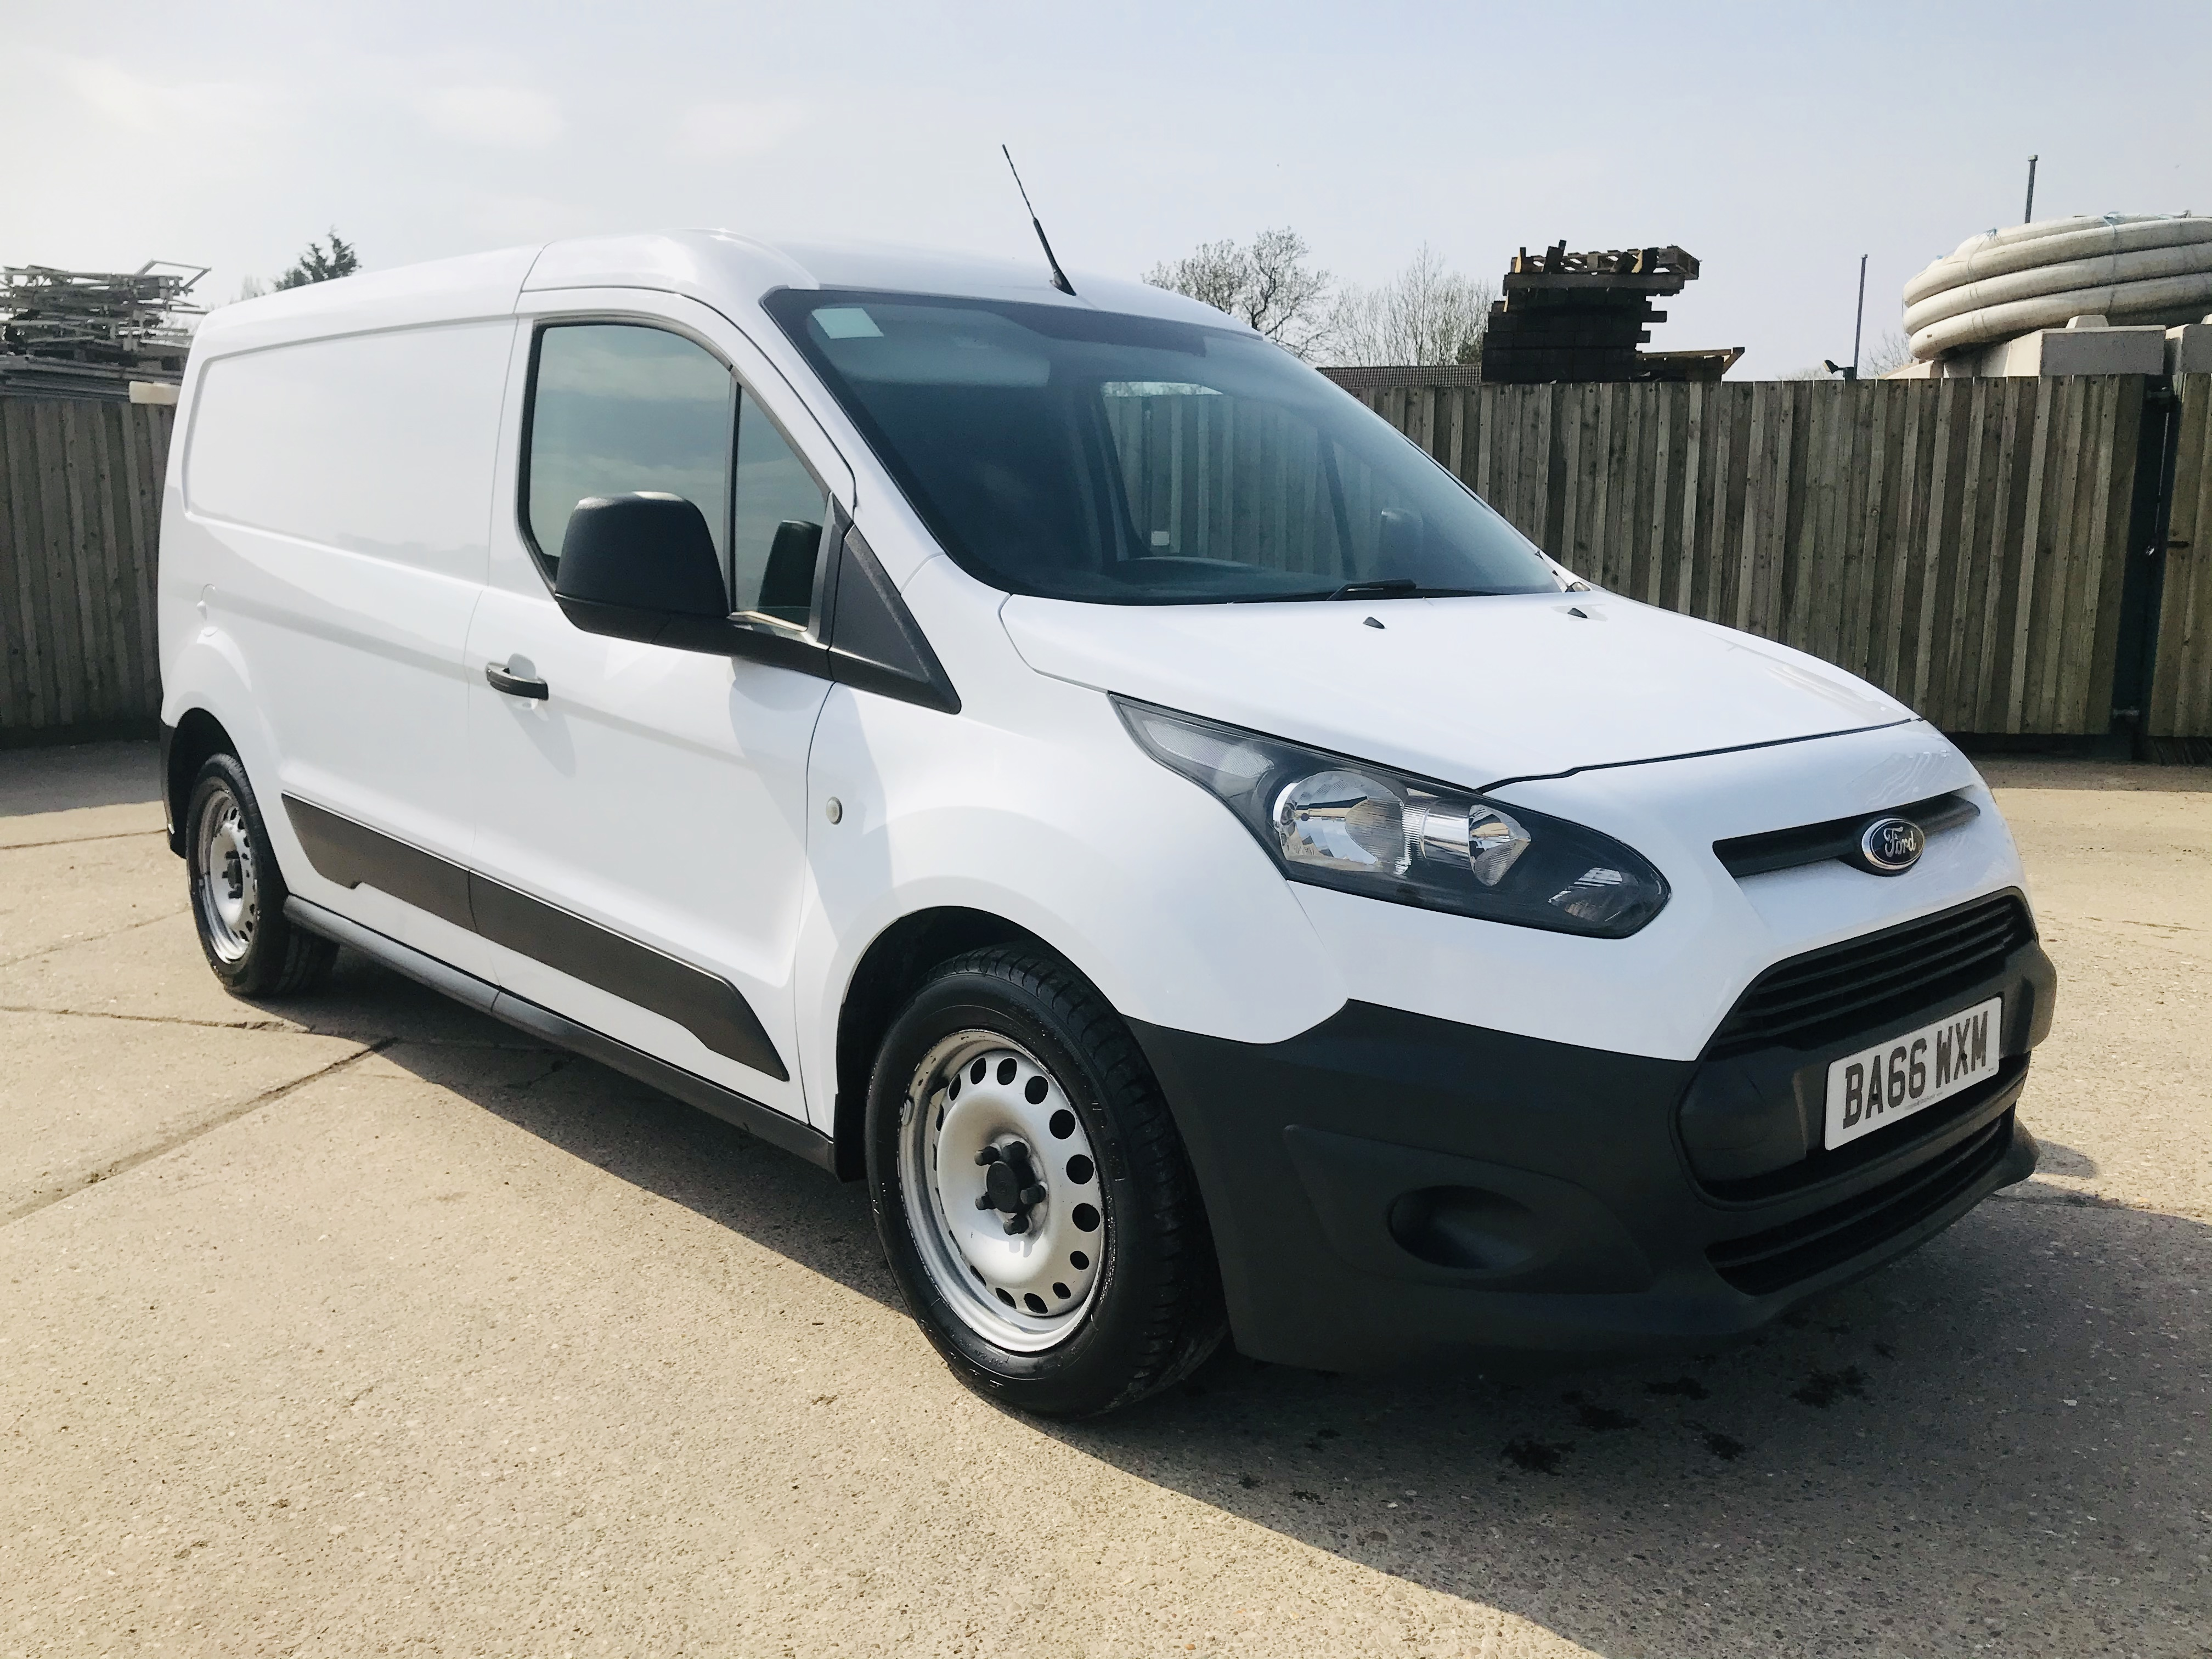 """ON SALE FORD TRANSIT CONNECT 1.6TDCI ECO-TECH 'LWB' 2017 REG - 1 OWNER - FSH - EURO 6""""ULEZ COMPLIANT - Image 3 of 30"""